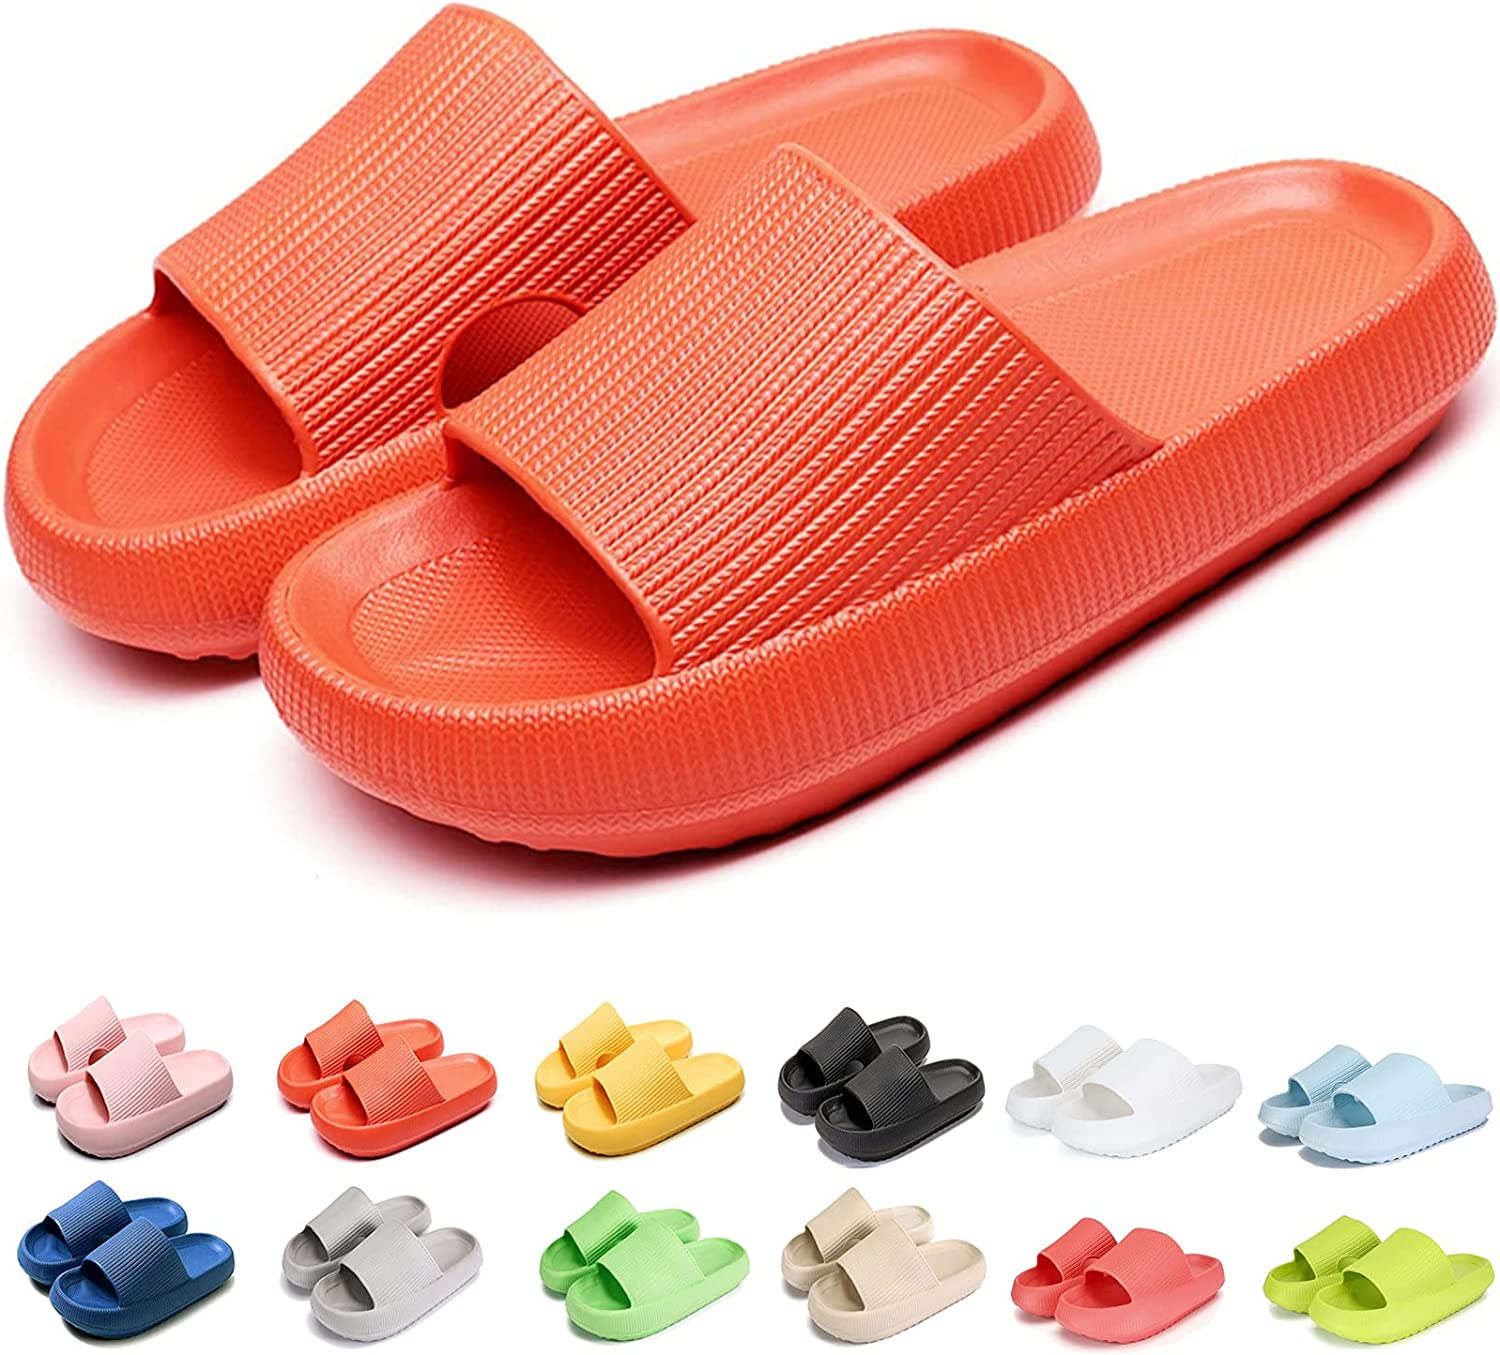 Pillow Slides Slippers Massage Shower Memphis Mall Uni Soled Thick Soft Super Max 61% OFF